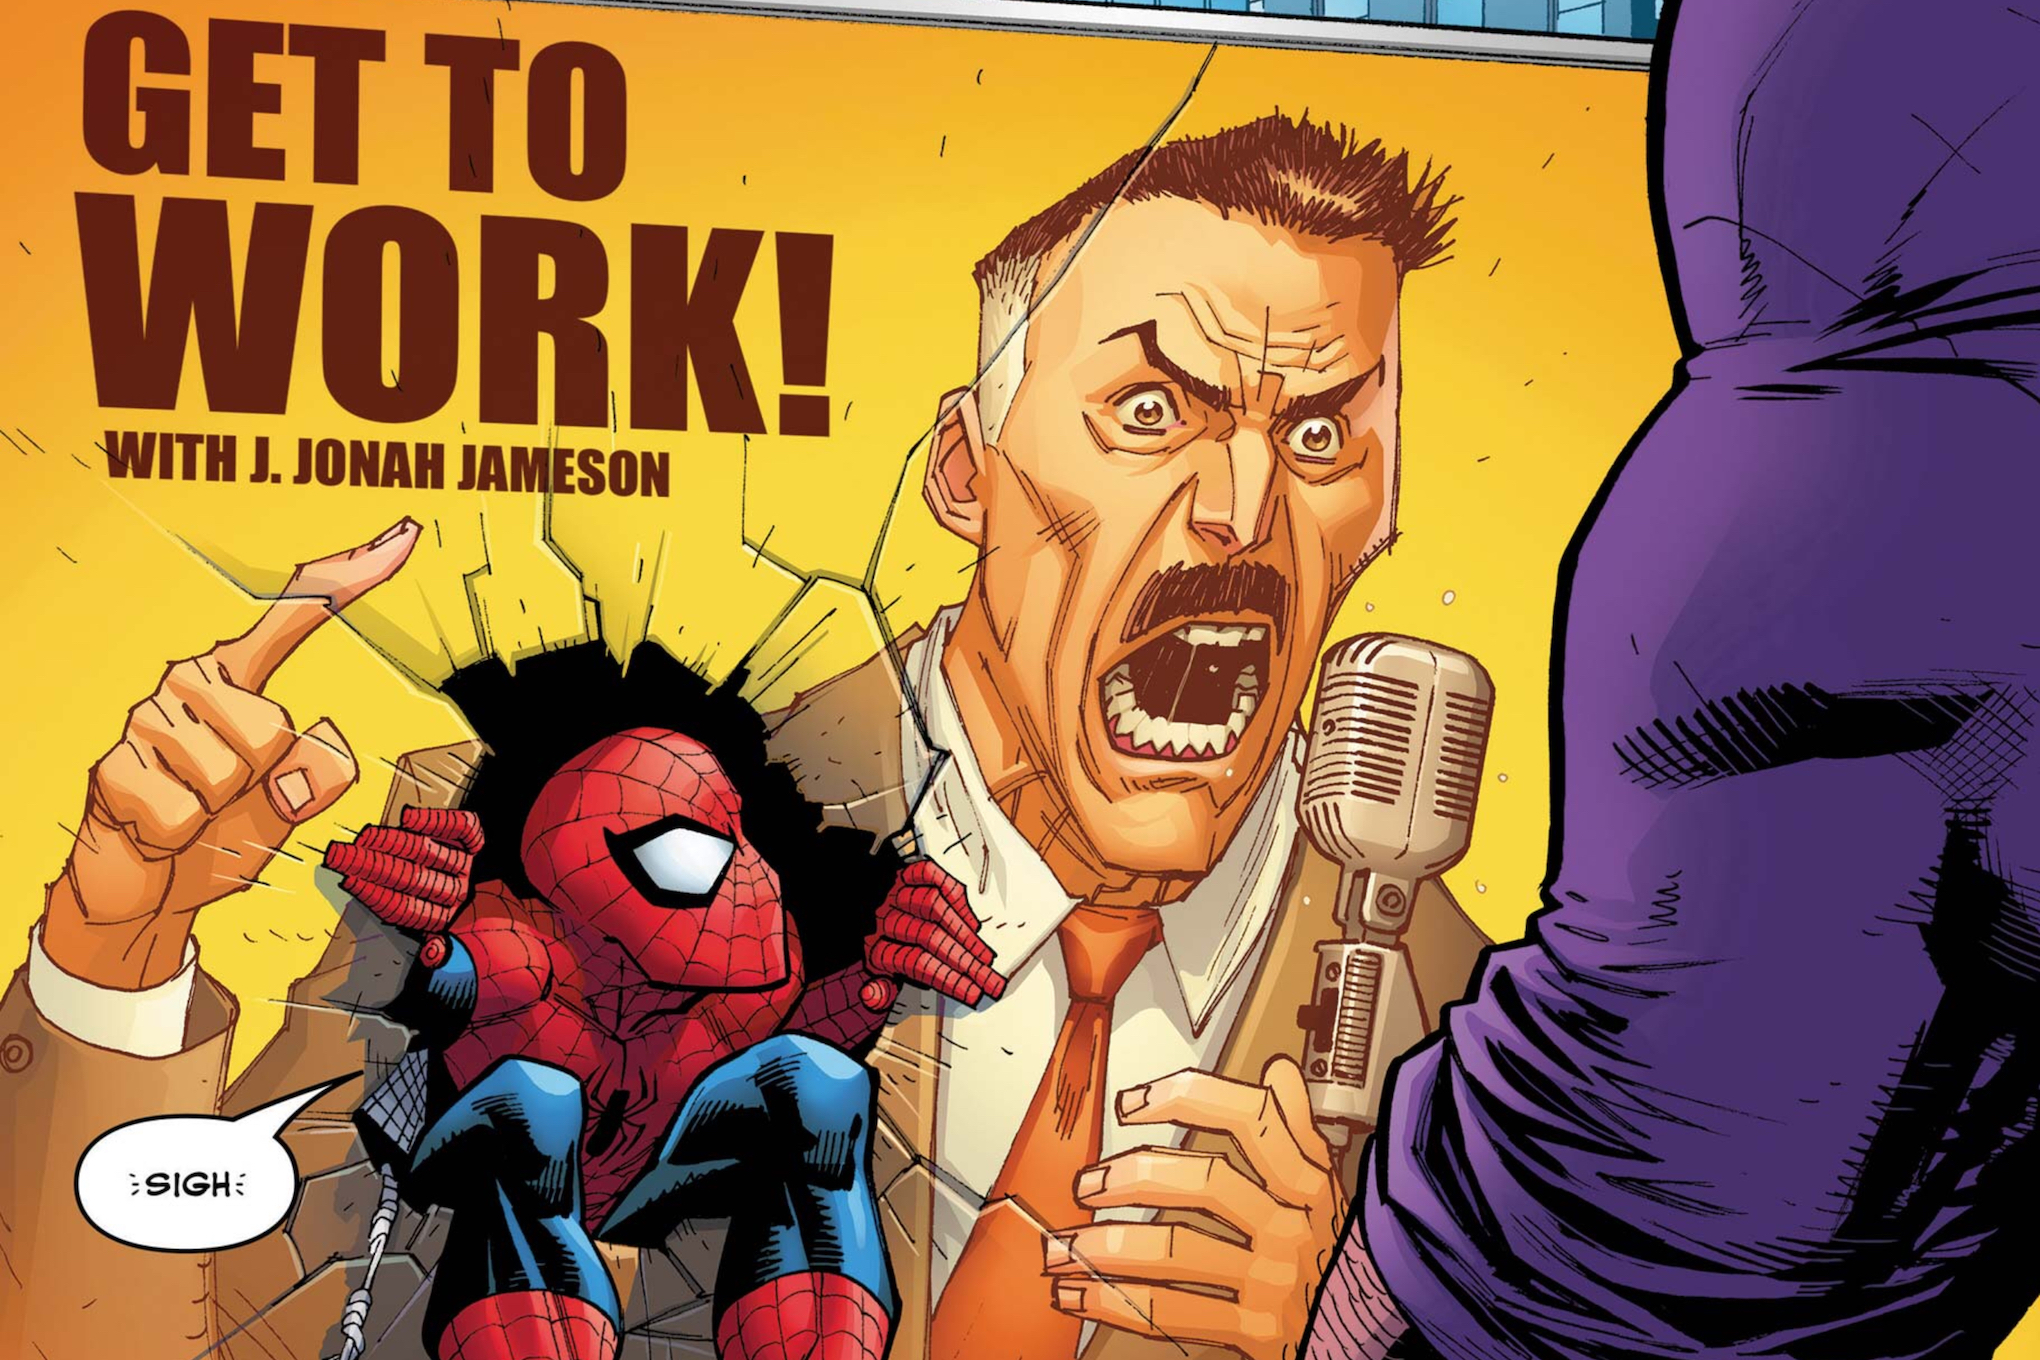 Why J  Jonah Jameson hates Spider-Man so much in Marvel